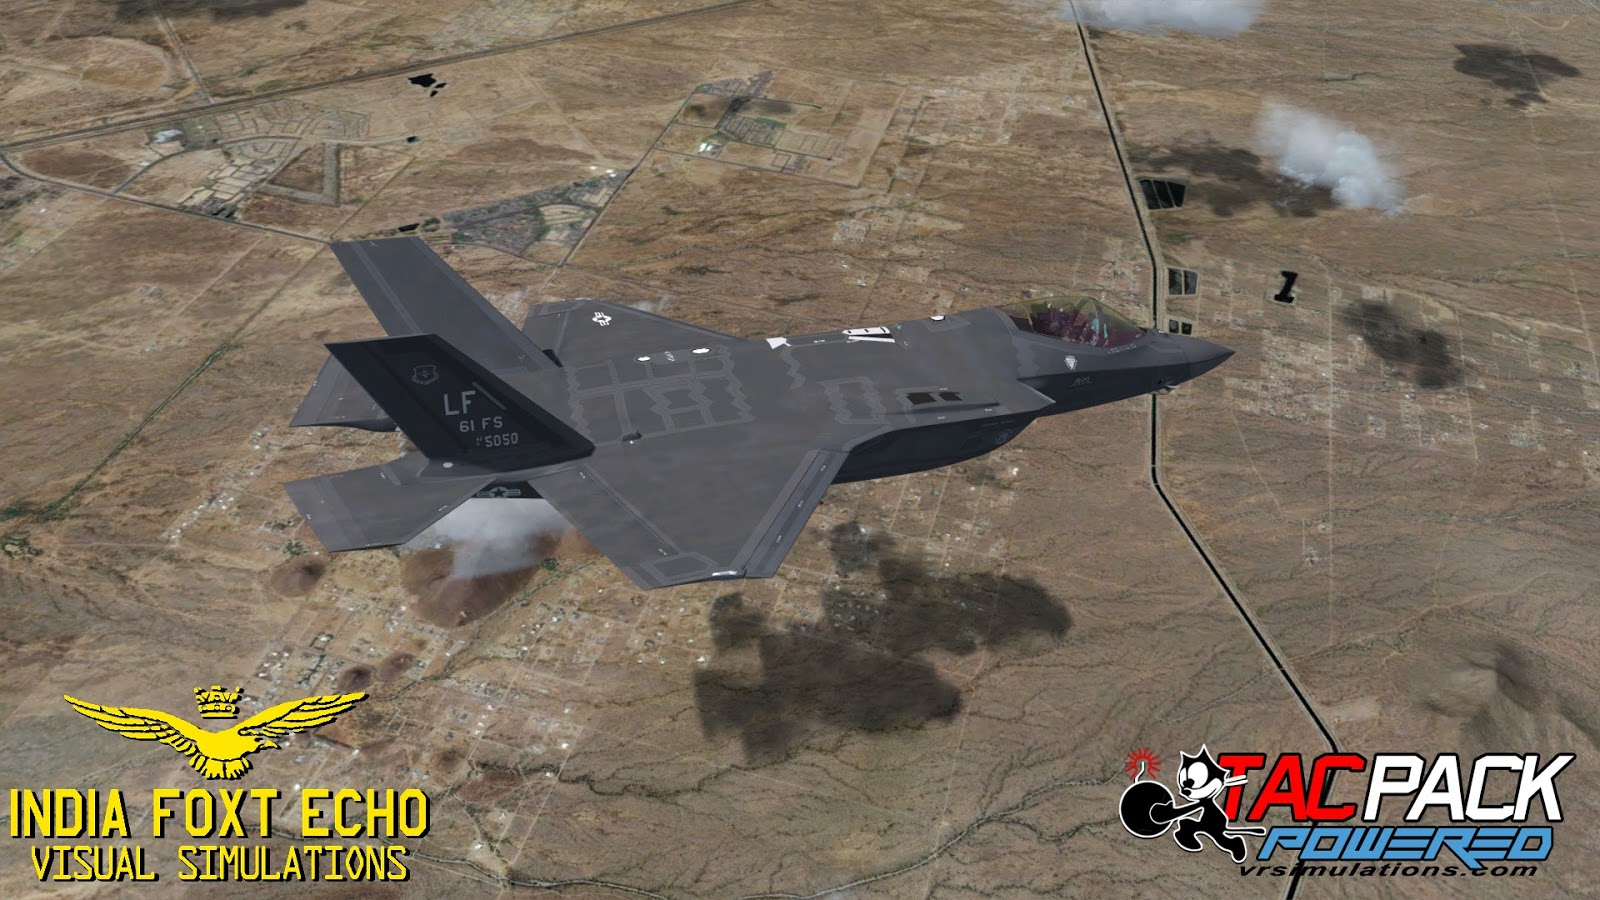 IndiaFoxtEcho Visual Simulations: F-35 Lightning II version